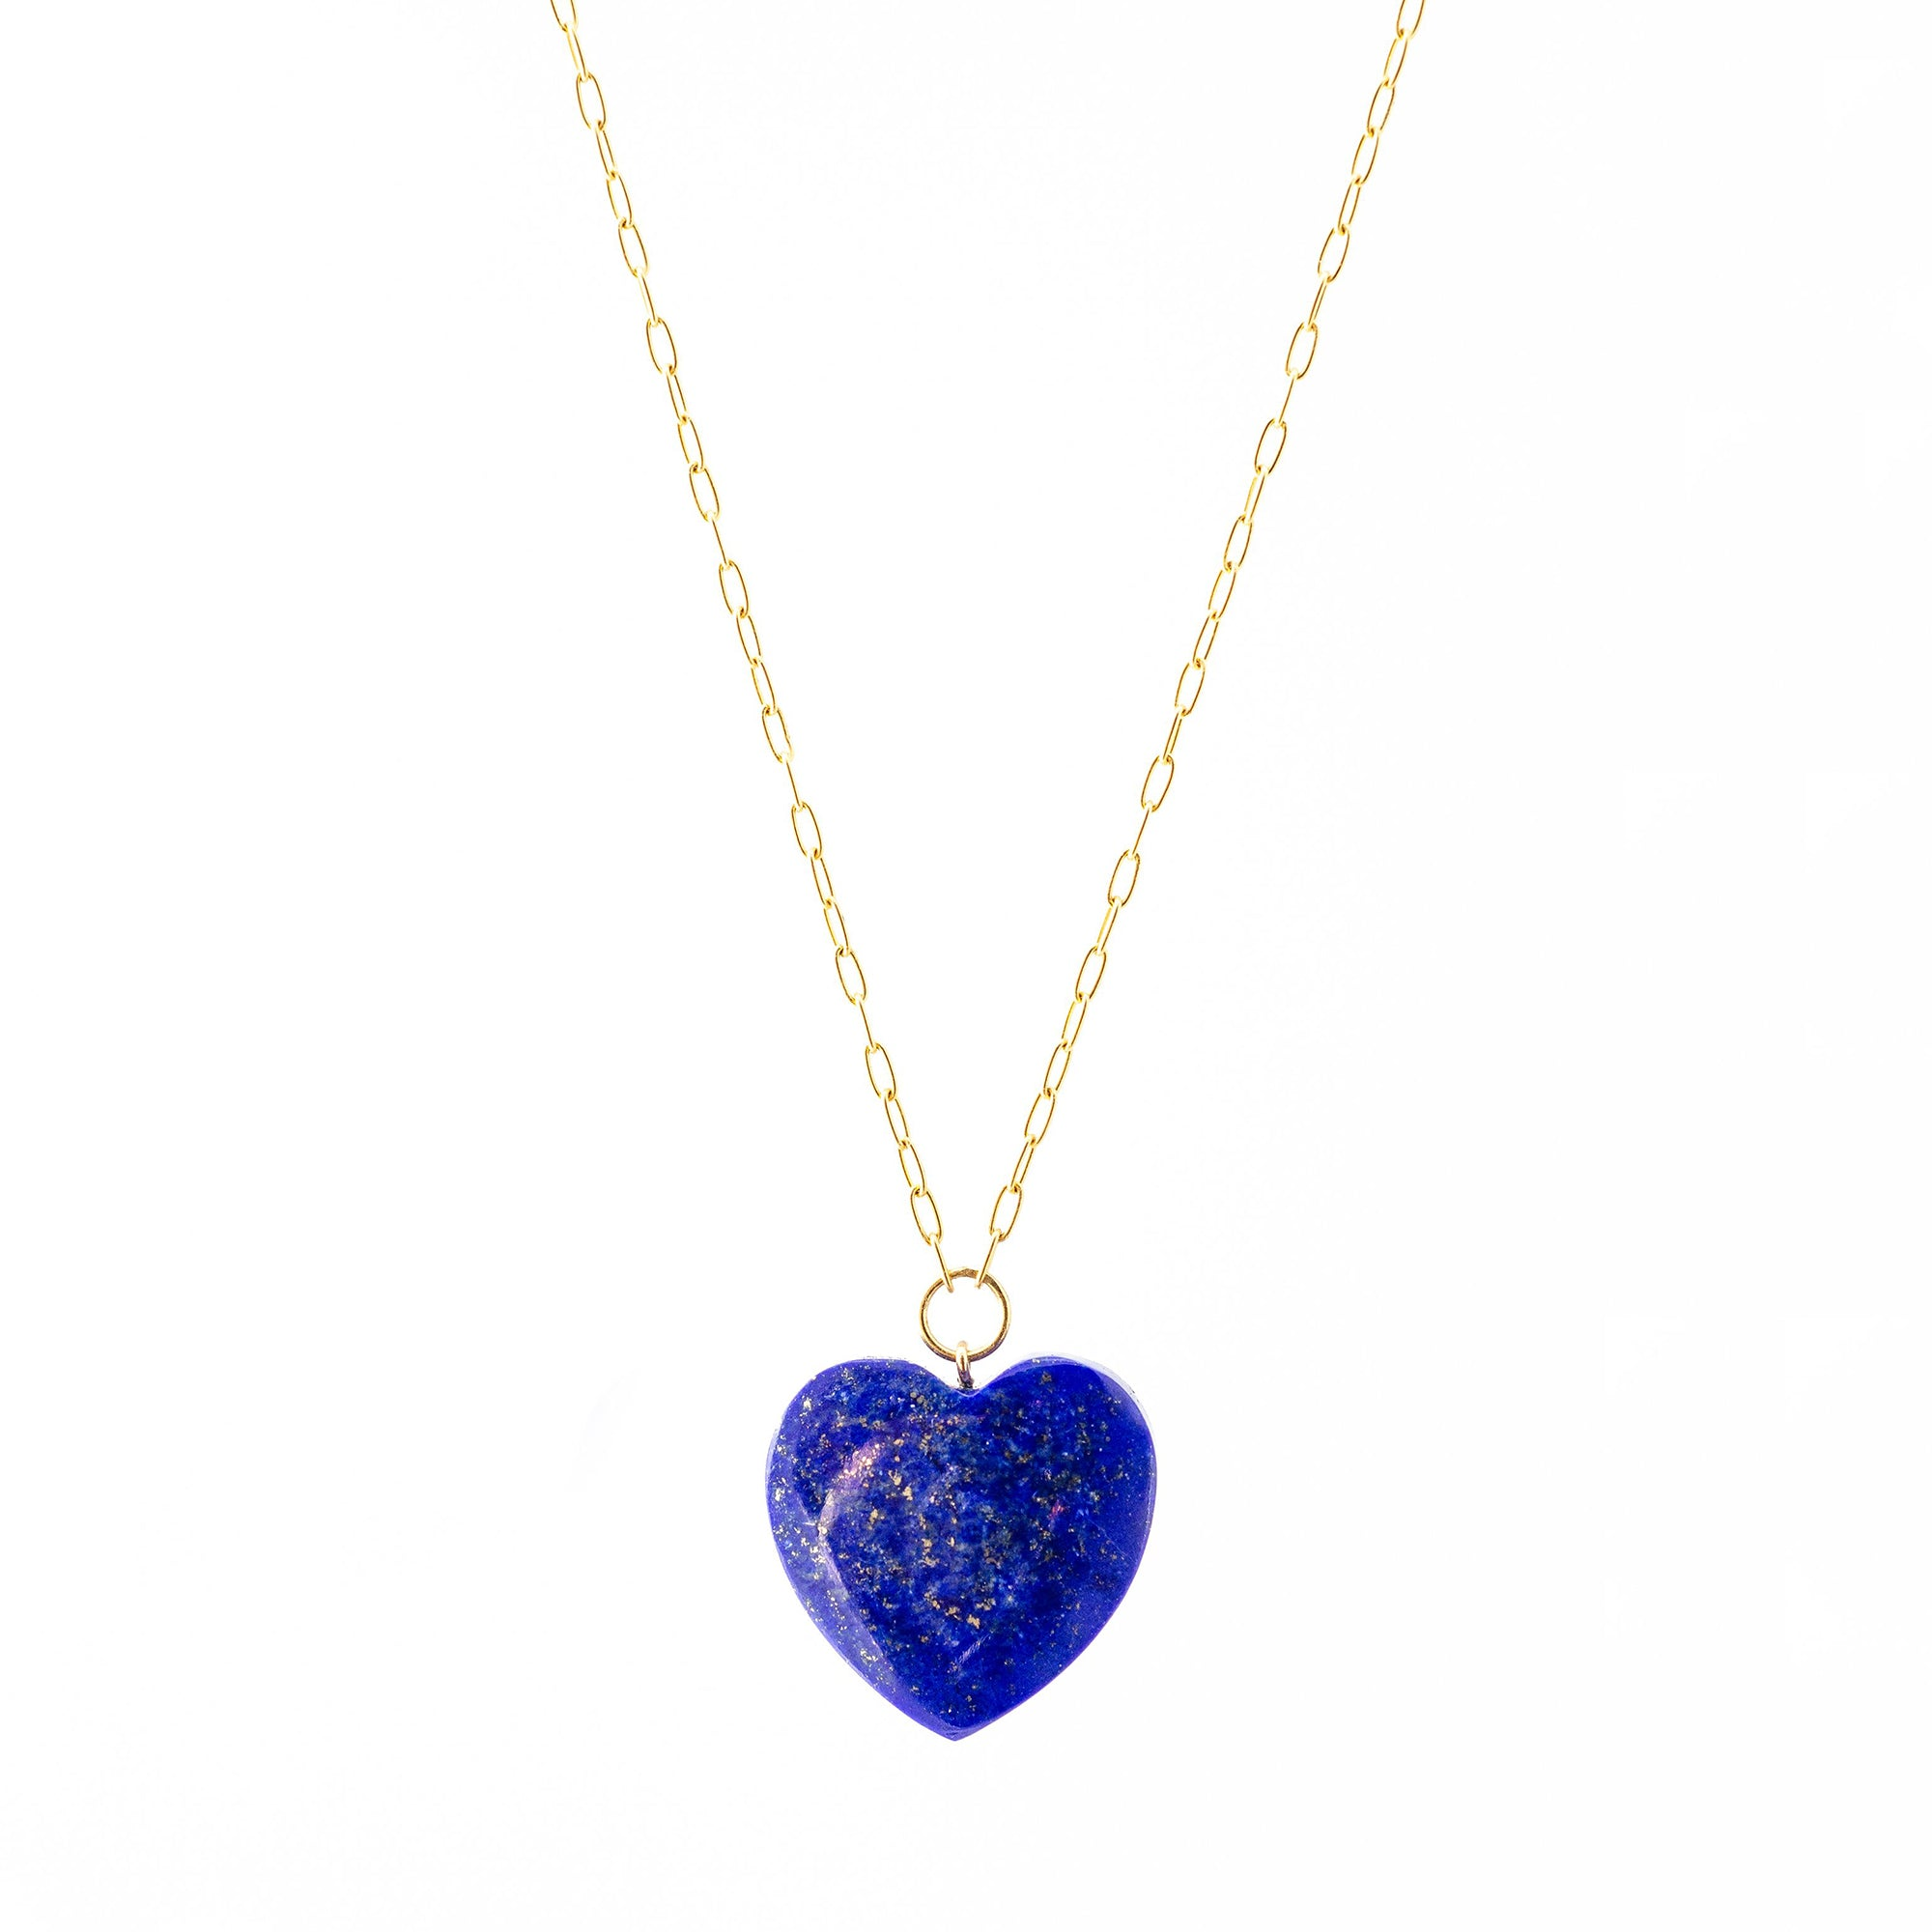 Haute Victoire Heart Necklace - Lapis Lazuli - Necklaces - Broken English Jewelry